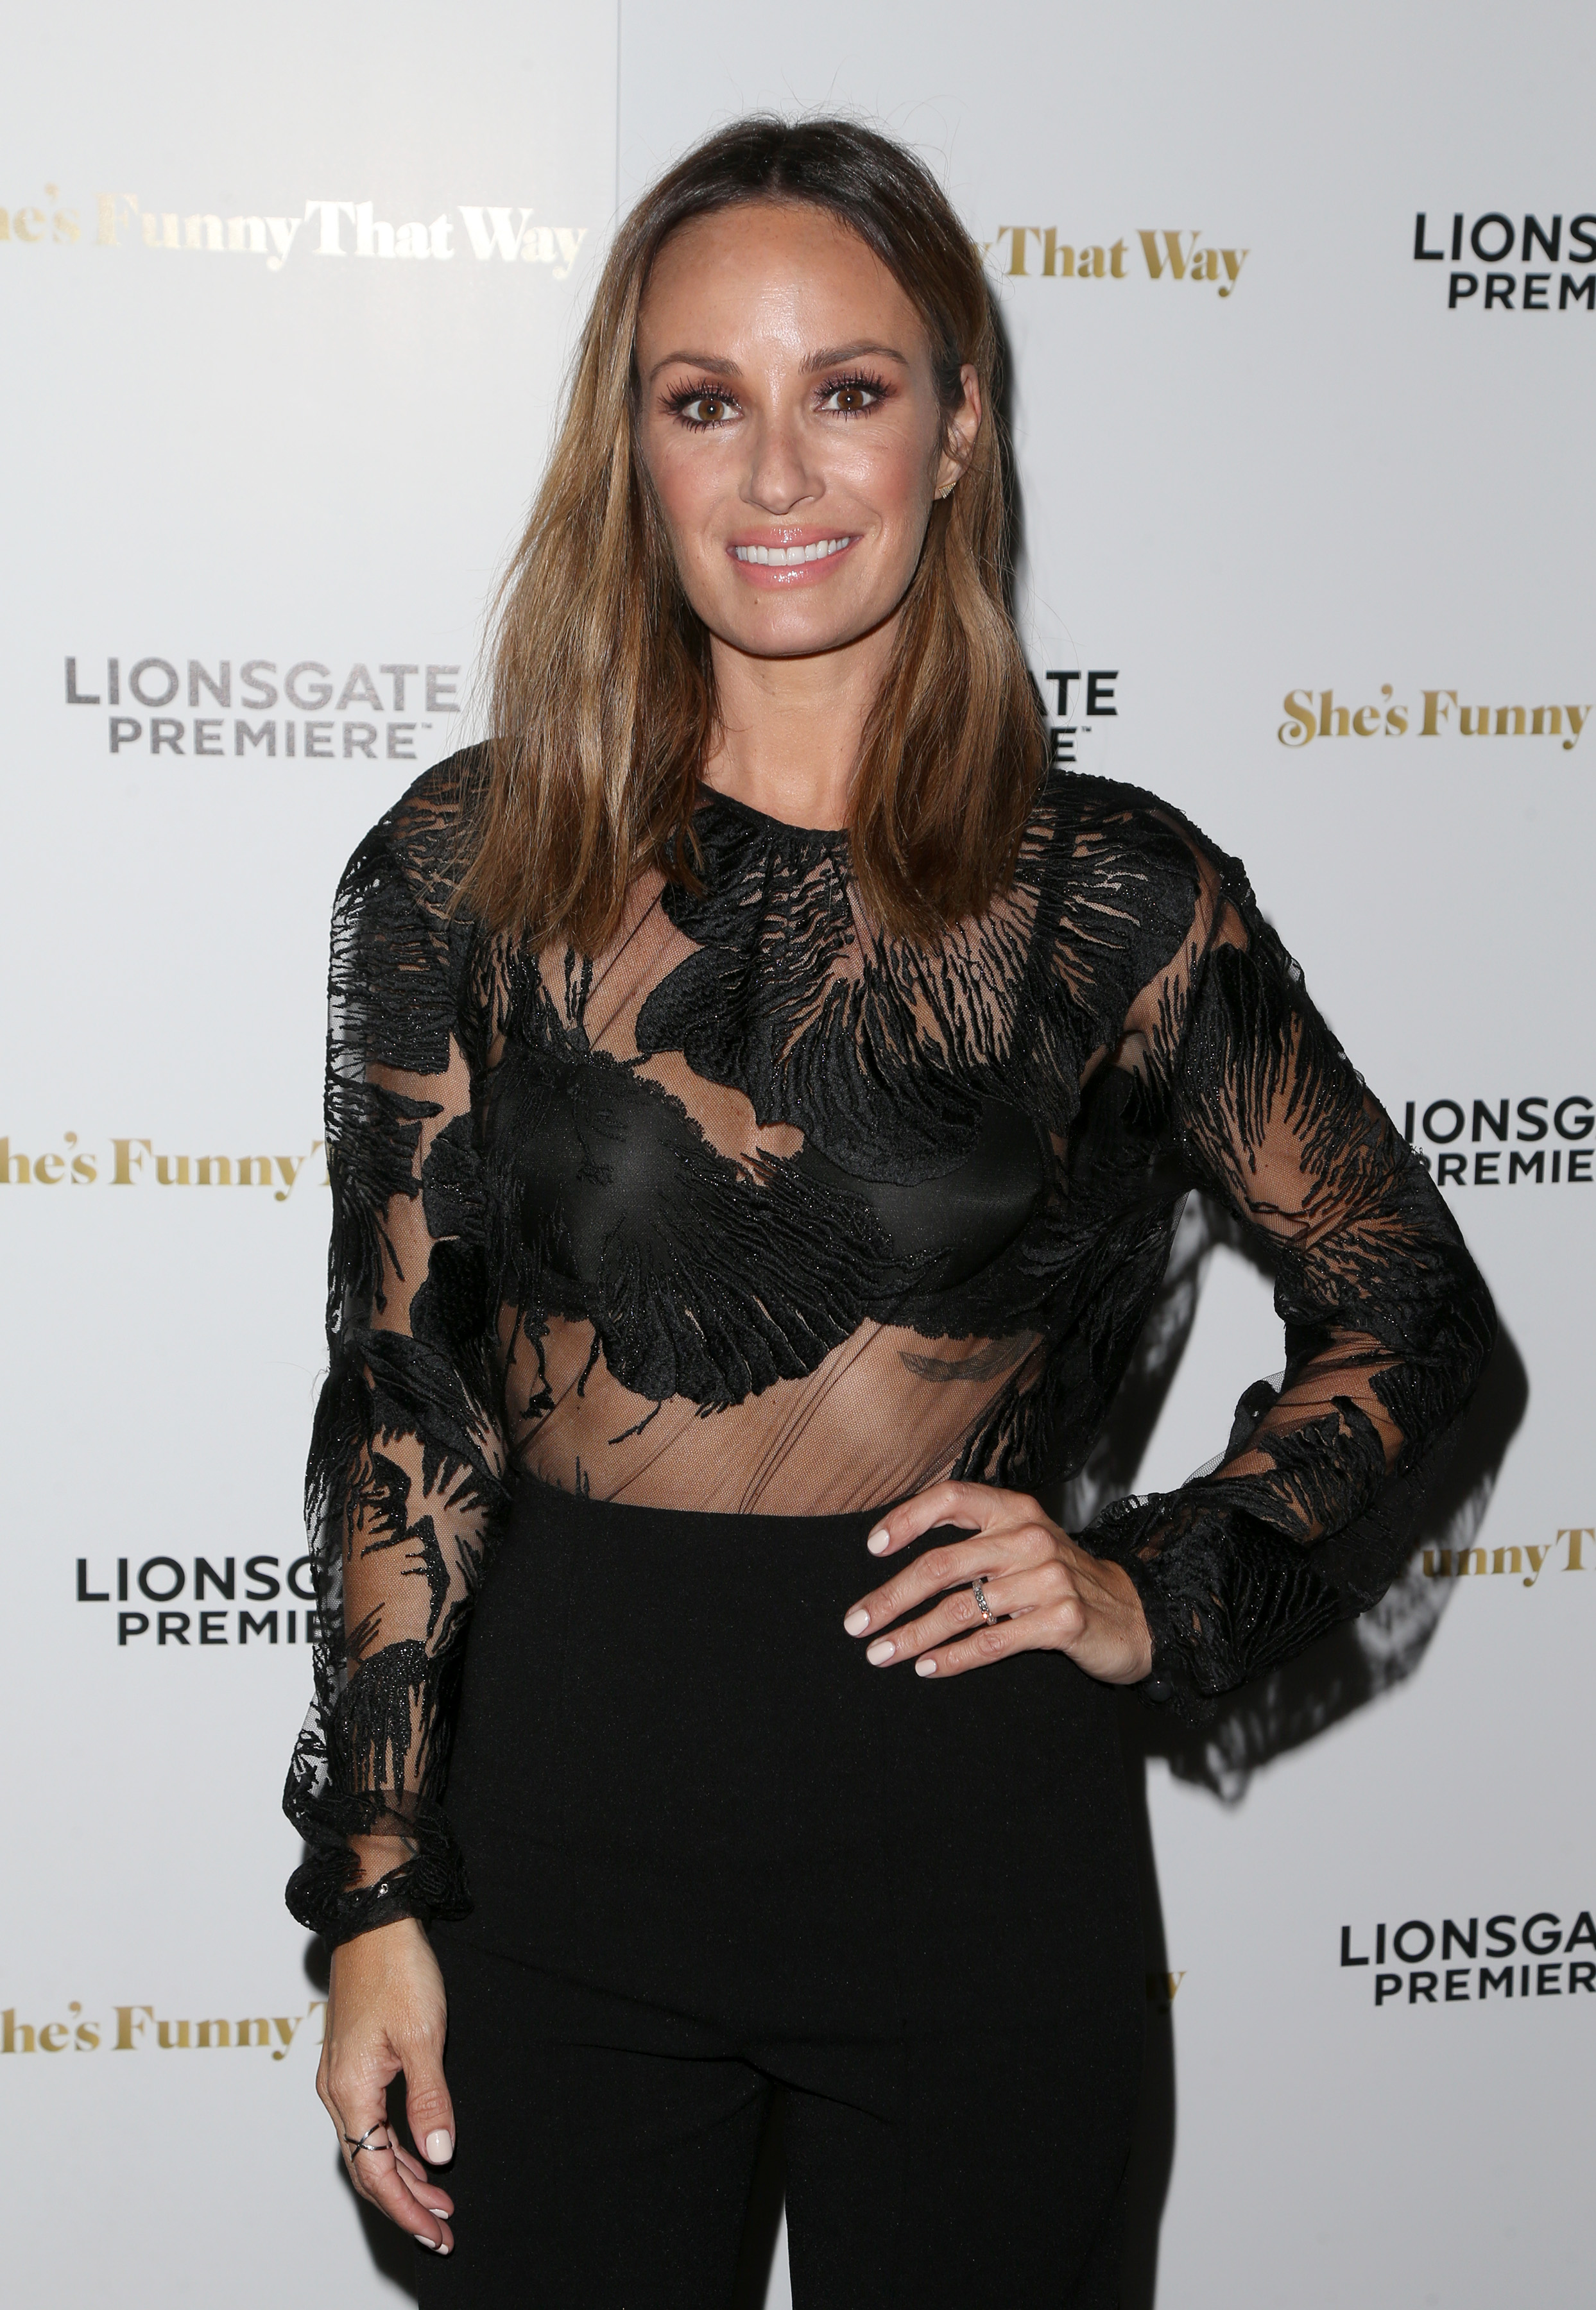 Los Angeles premiere 'She's Funny That Way' at Harmony Gold - Arrivals                                    Featuring: Catt Sadler                  Where: Los Angeles, California, United States                  When: 19 Aug 2015                  Credit: FayesVision/WENN.com